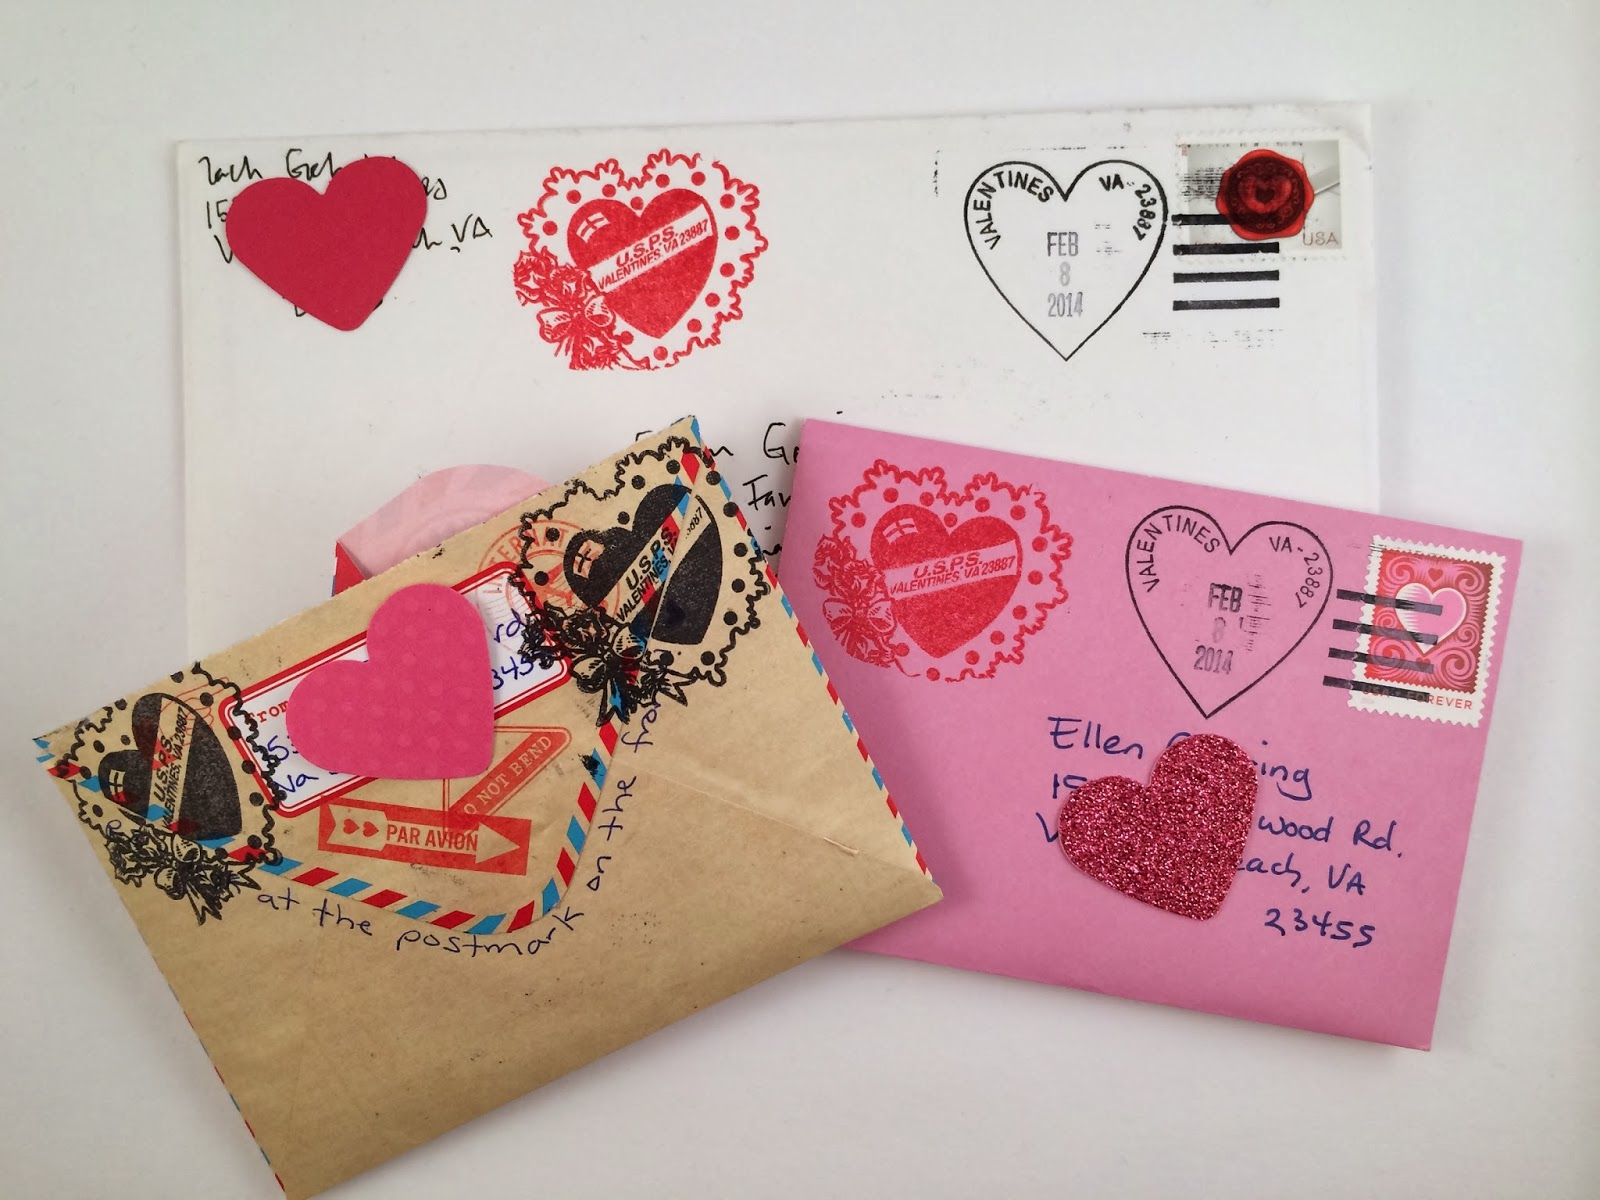 postmarked with love received with love valentines day edition